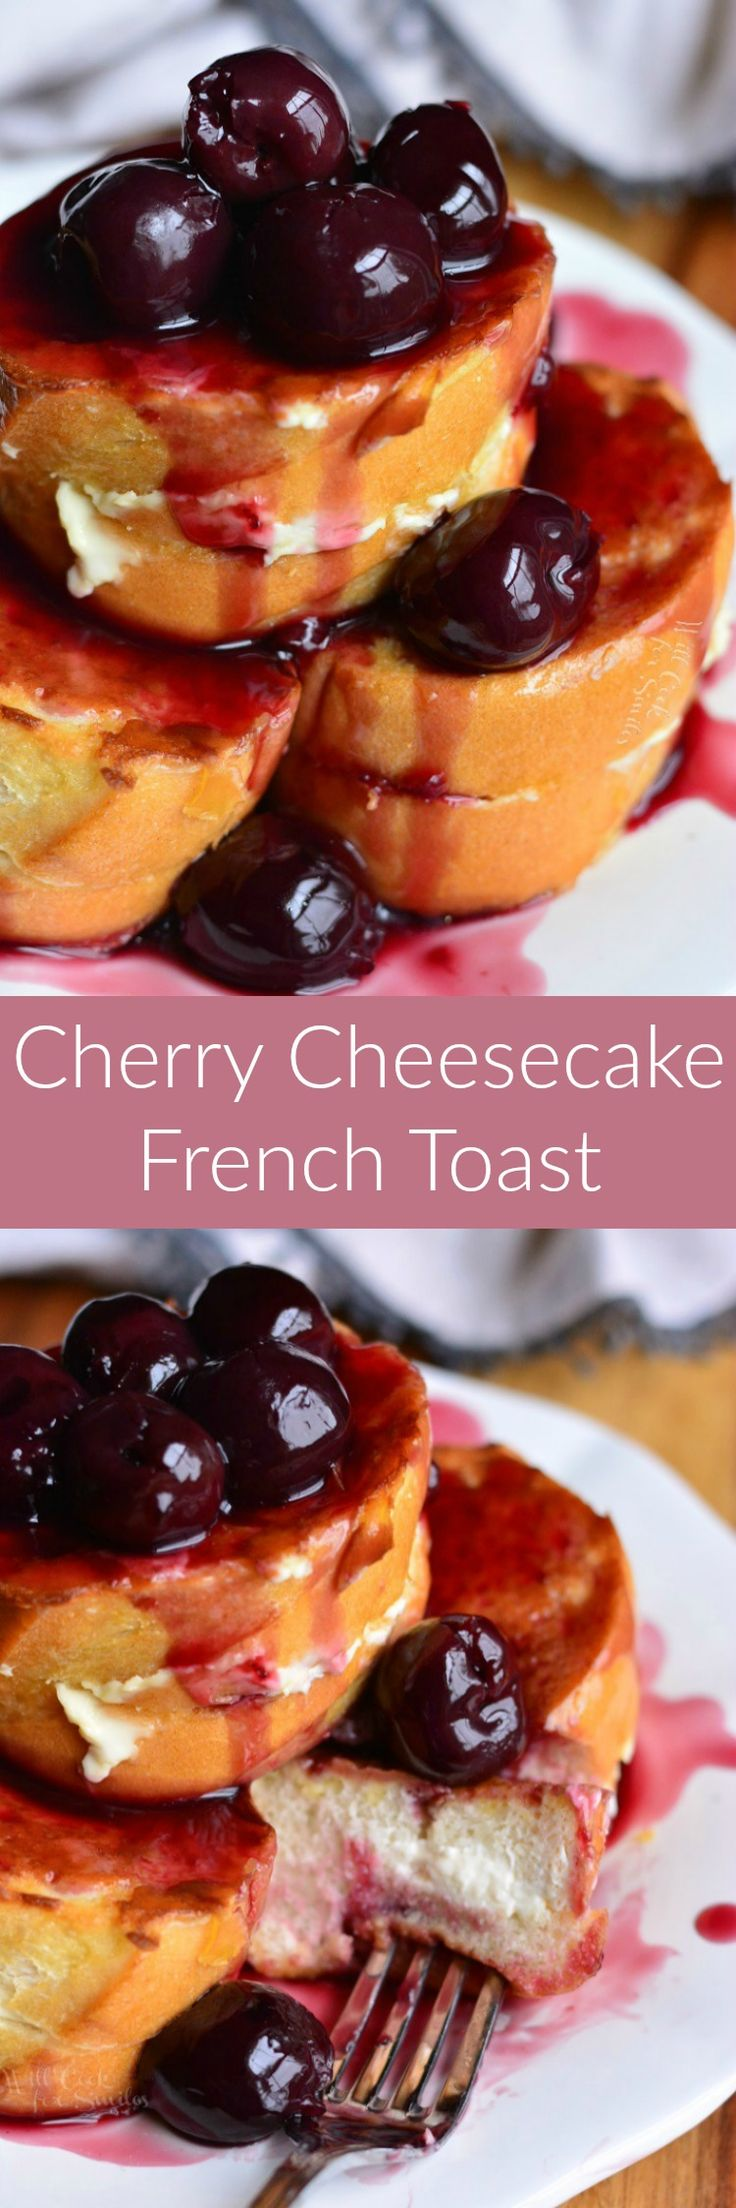 Cherry Cheesecake Stuffed French Toast! HEAVENLY breakfast made with soft and chewy French baguette stuffed with sweet cream cheese mixture and topped with brandy dark cherries in sauce. #frenchtoast #cherrycheesecake #stuffedfrenchtoast #cherrytopping